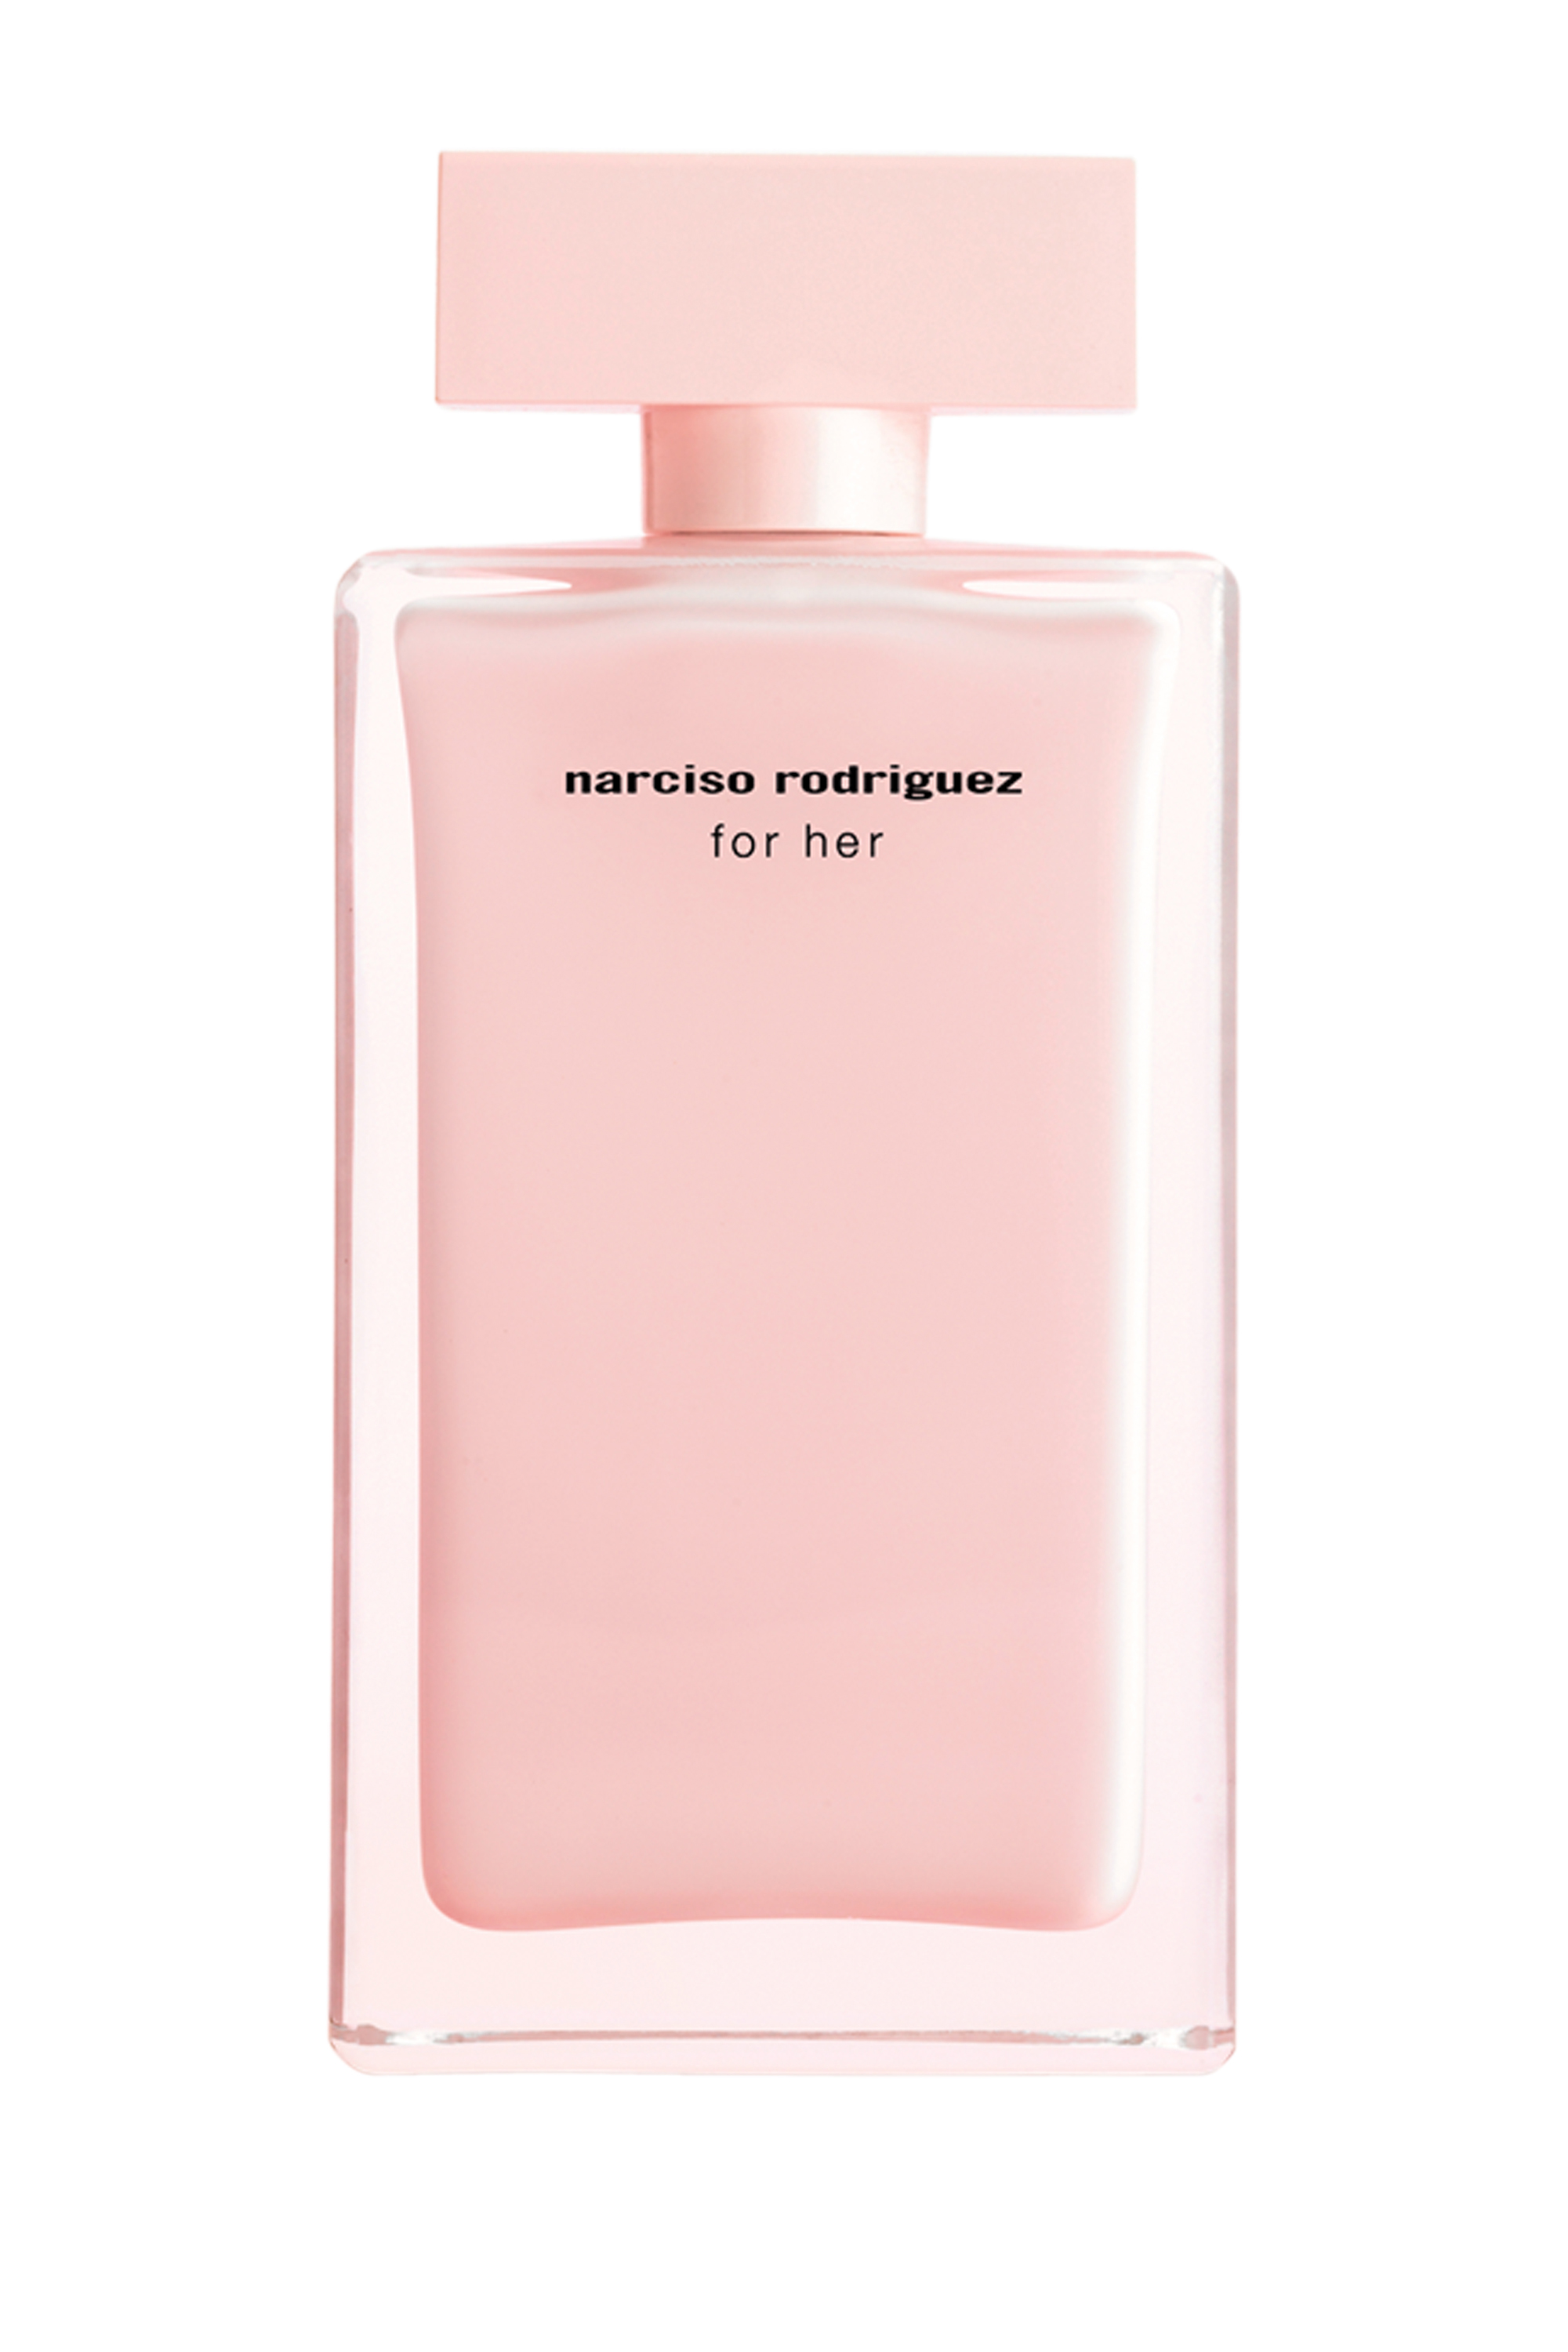 Closet beauty limited edition narciso rodriguez best photo